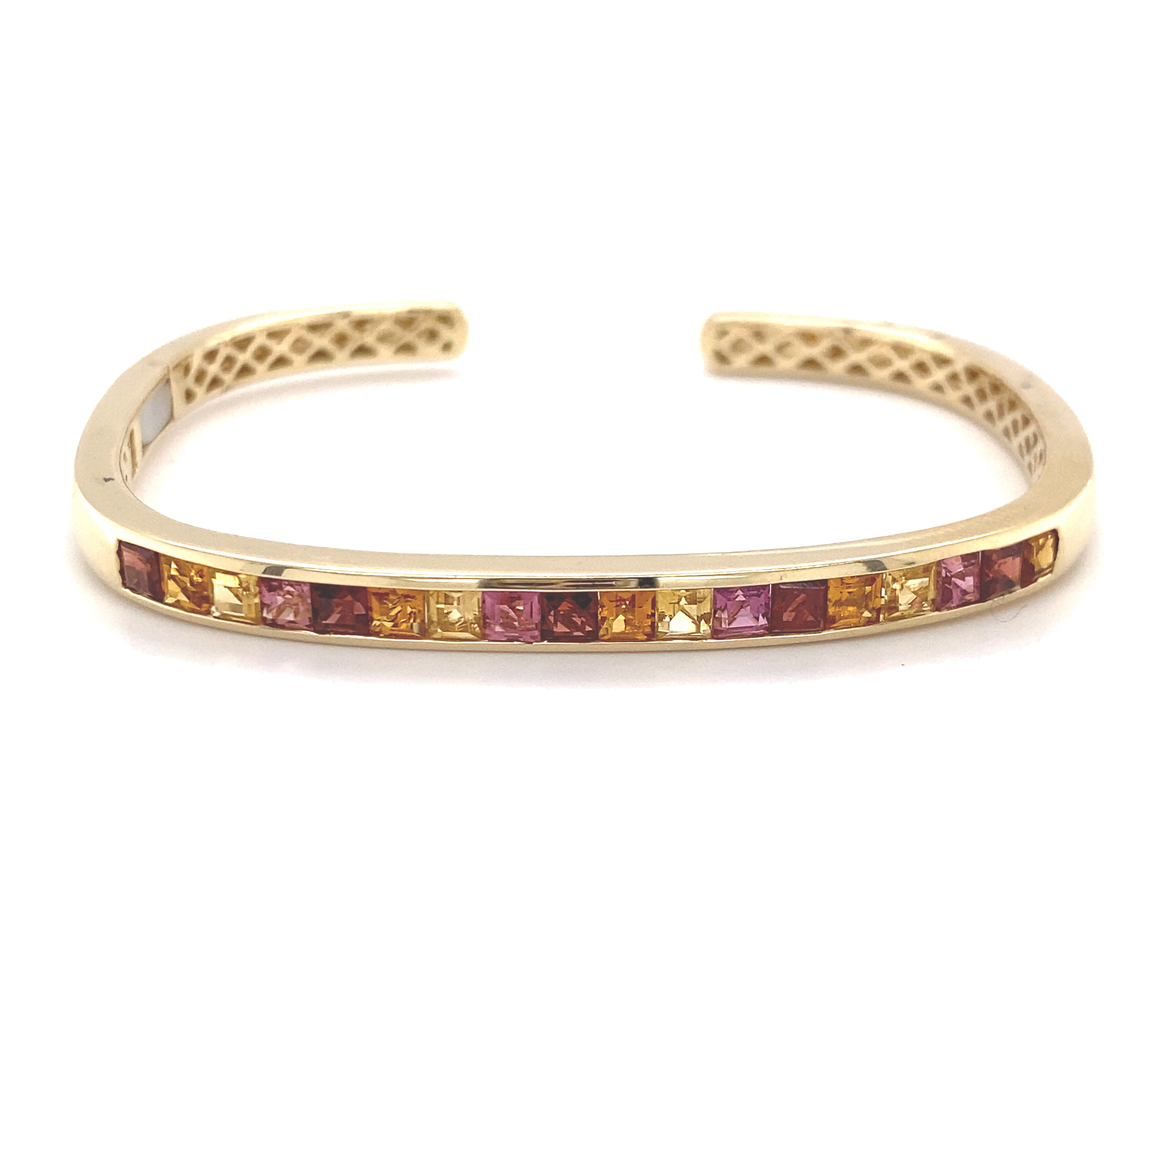 Hinged Rectangular Cuff With Red Garnet, Pink Tourmaline, Citrine And Yellow Beryl - Lesley Ann Jewels